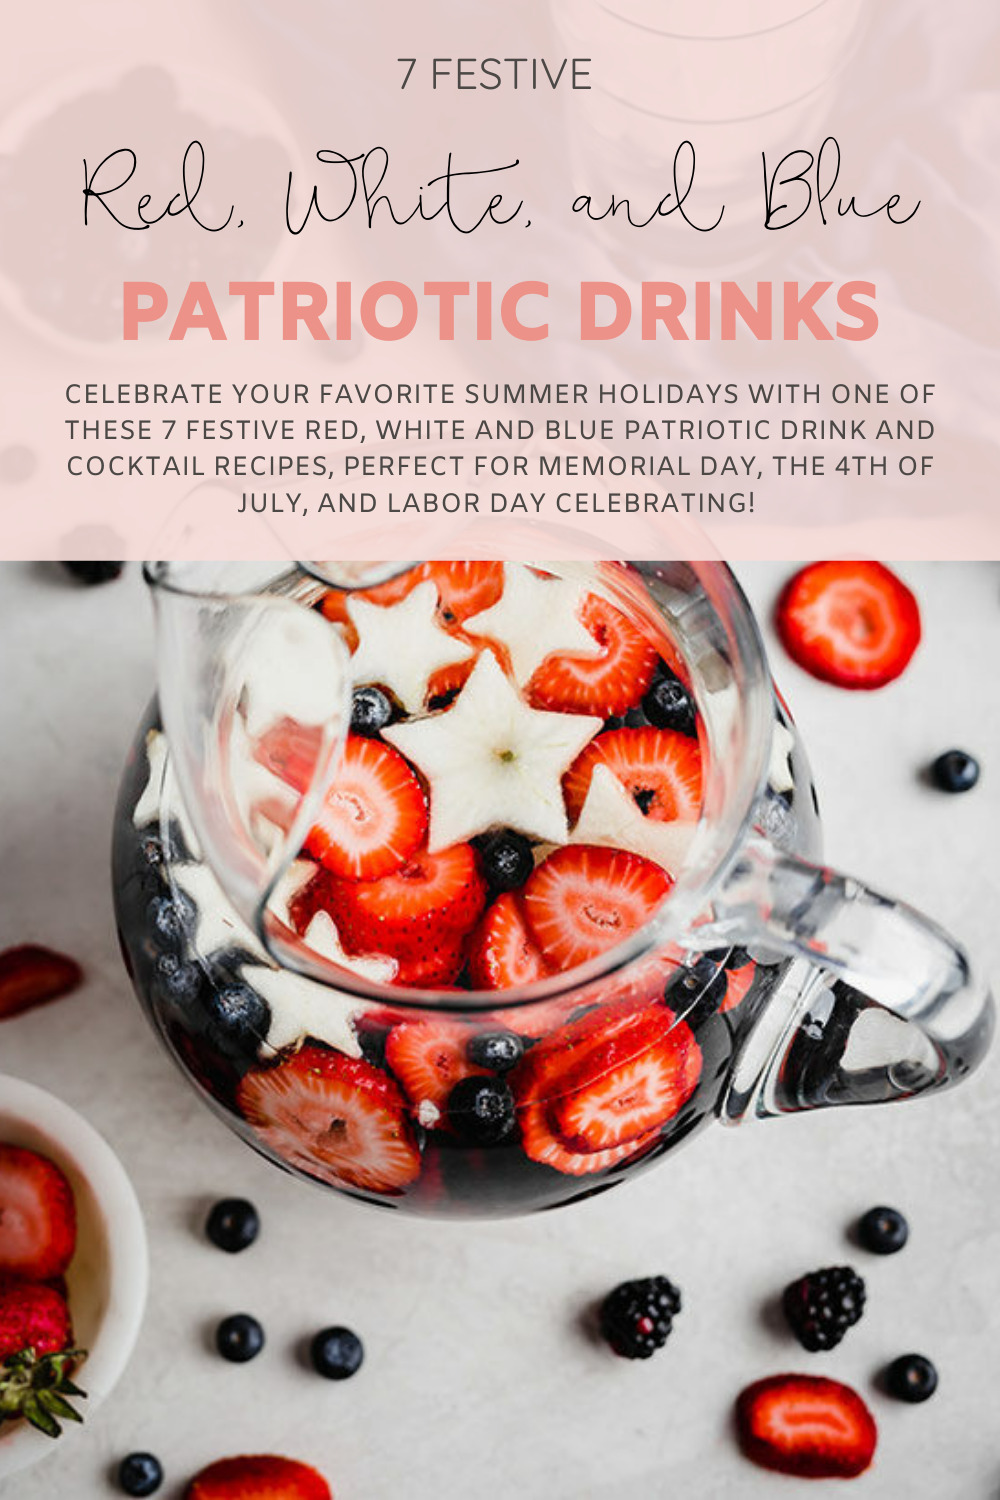 Patriotic Drink and Cocktail Recipes with strawberries and berries